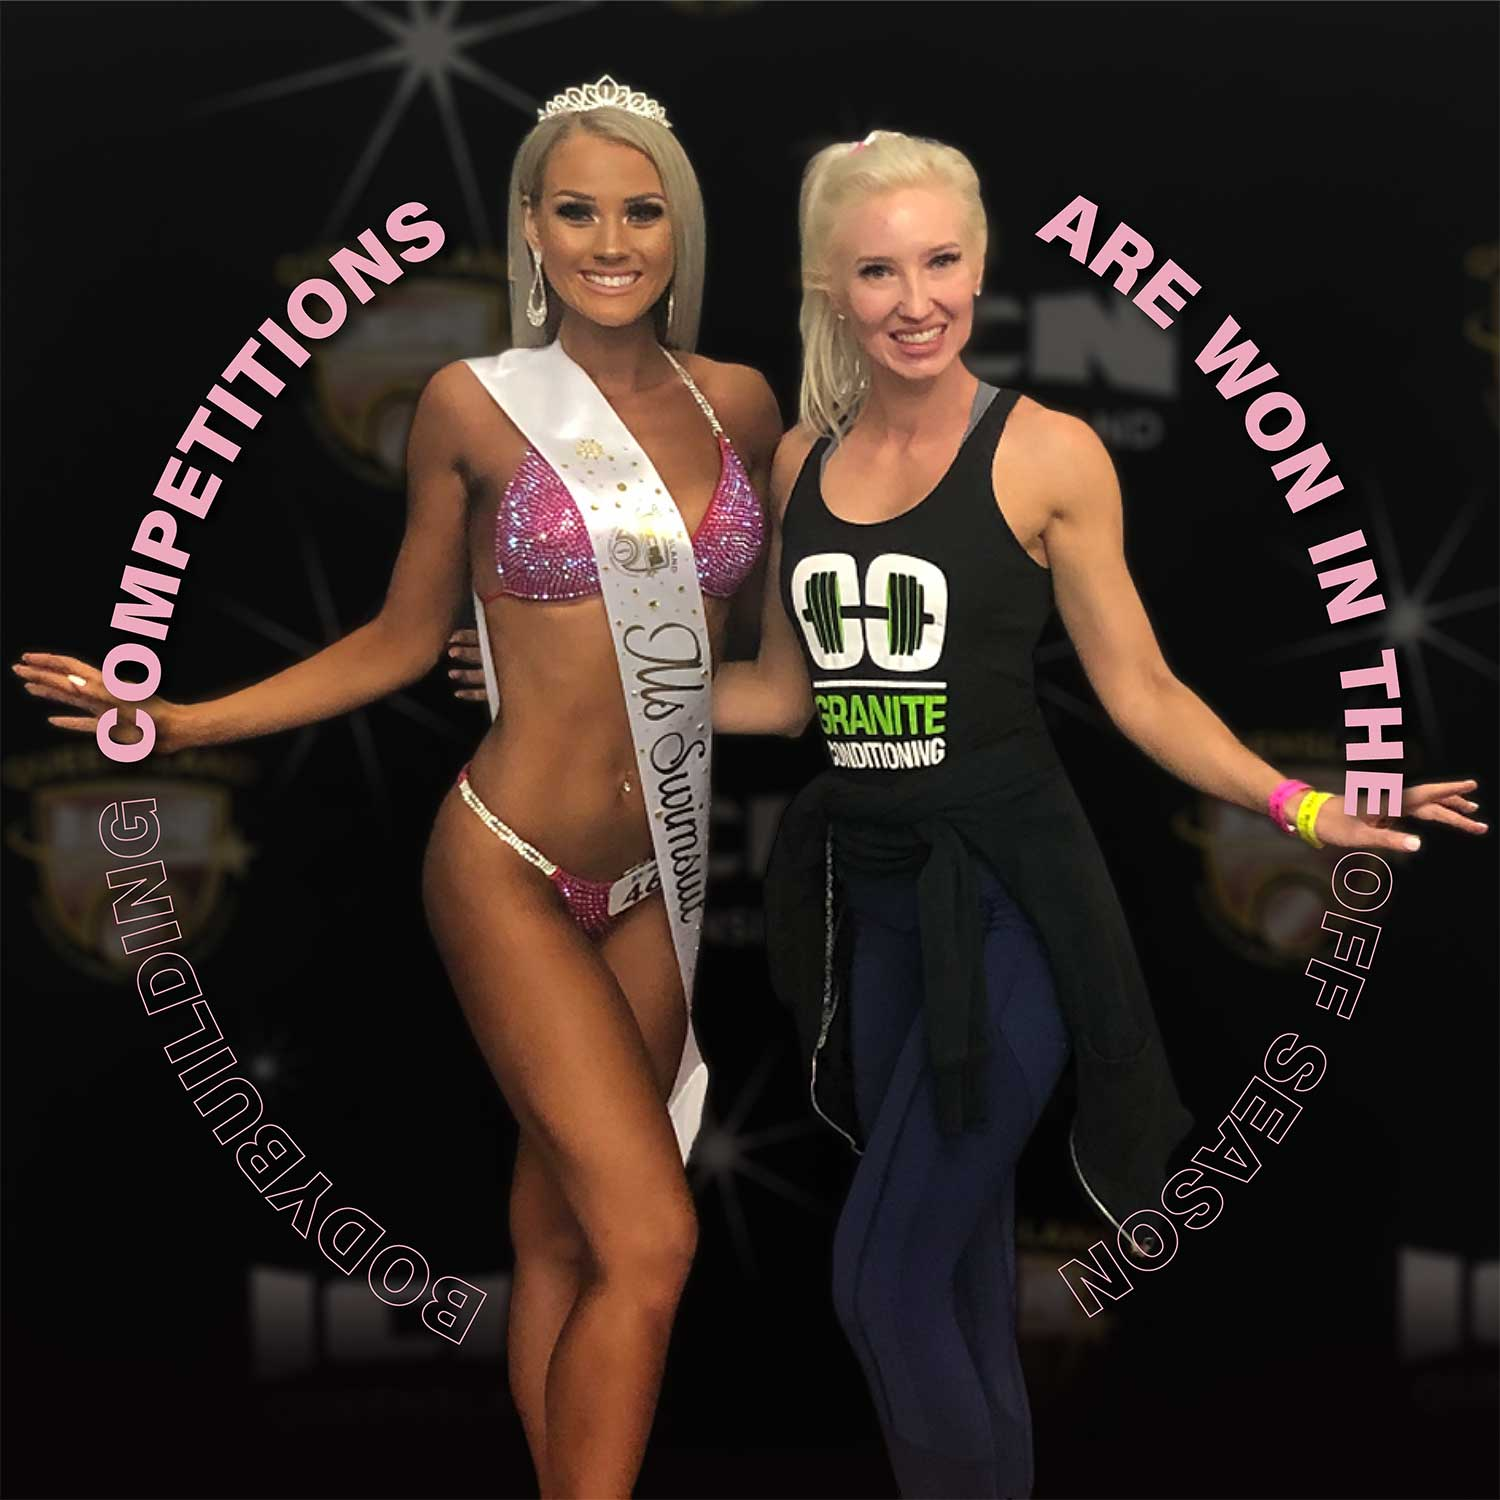 Personal trainer   Get fir with a professional personal trainer & a bikini model